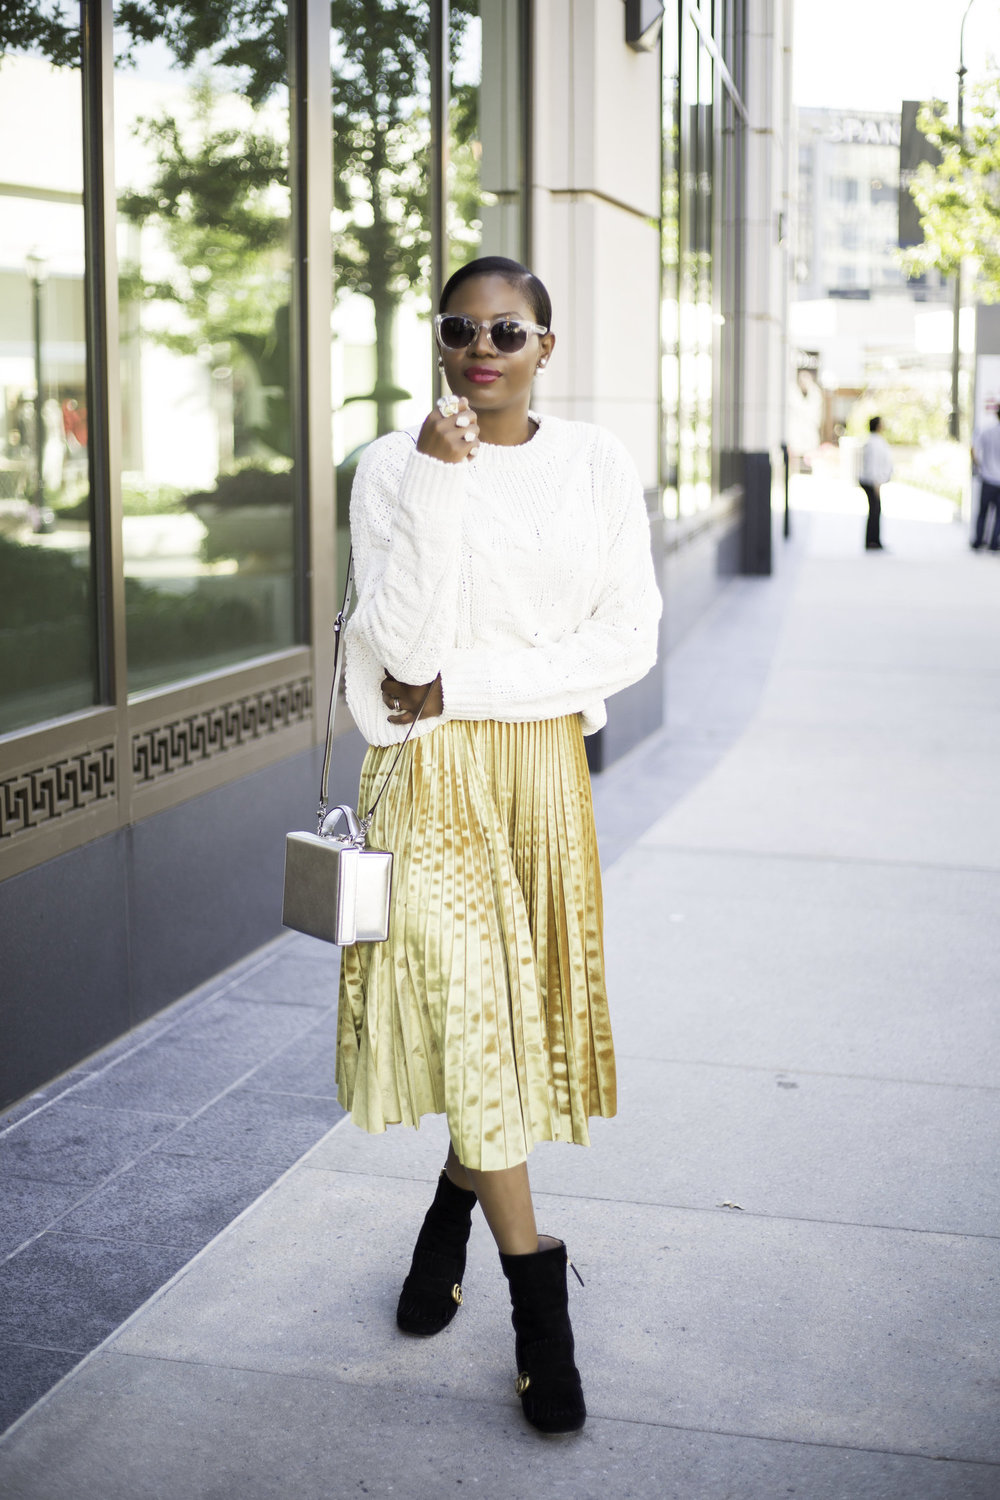 Monica Awe-Etuk, Awed by Monica, Melodie Stewart, The Style Klazit, Atlanta Style Bloggers